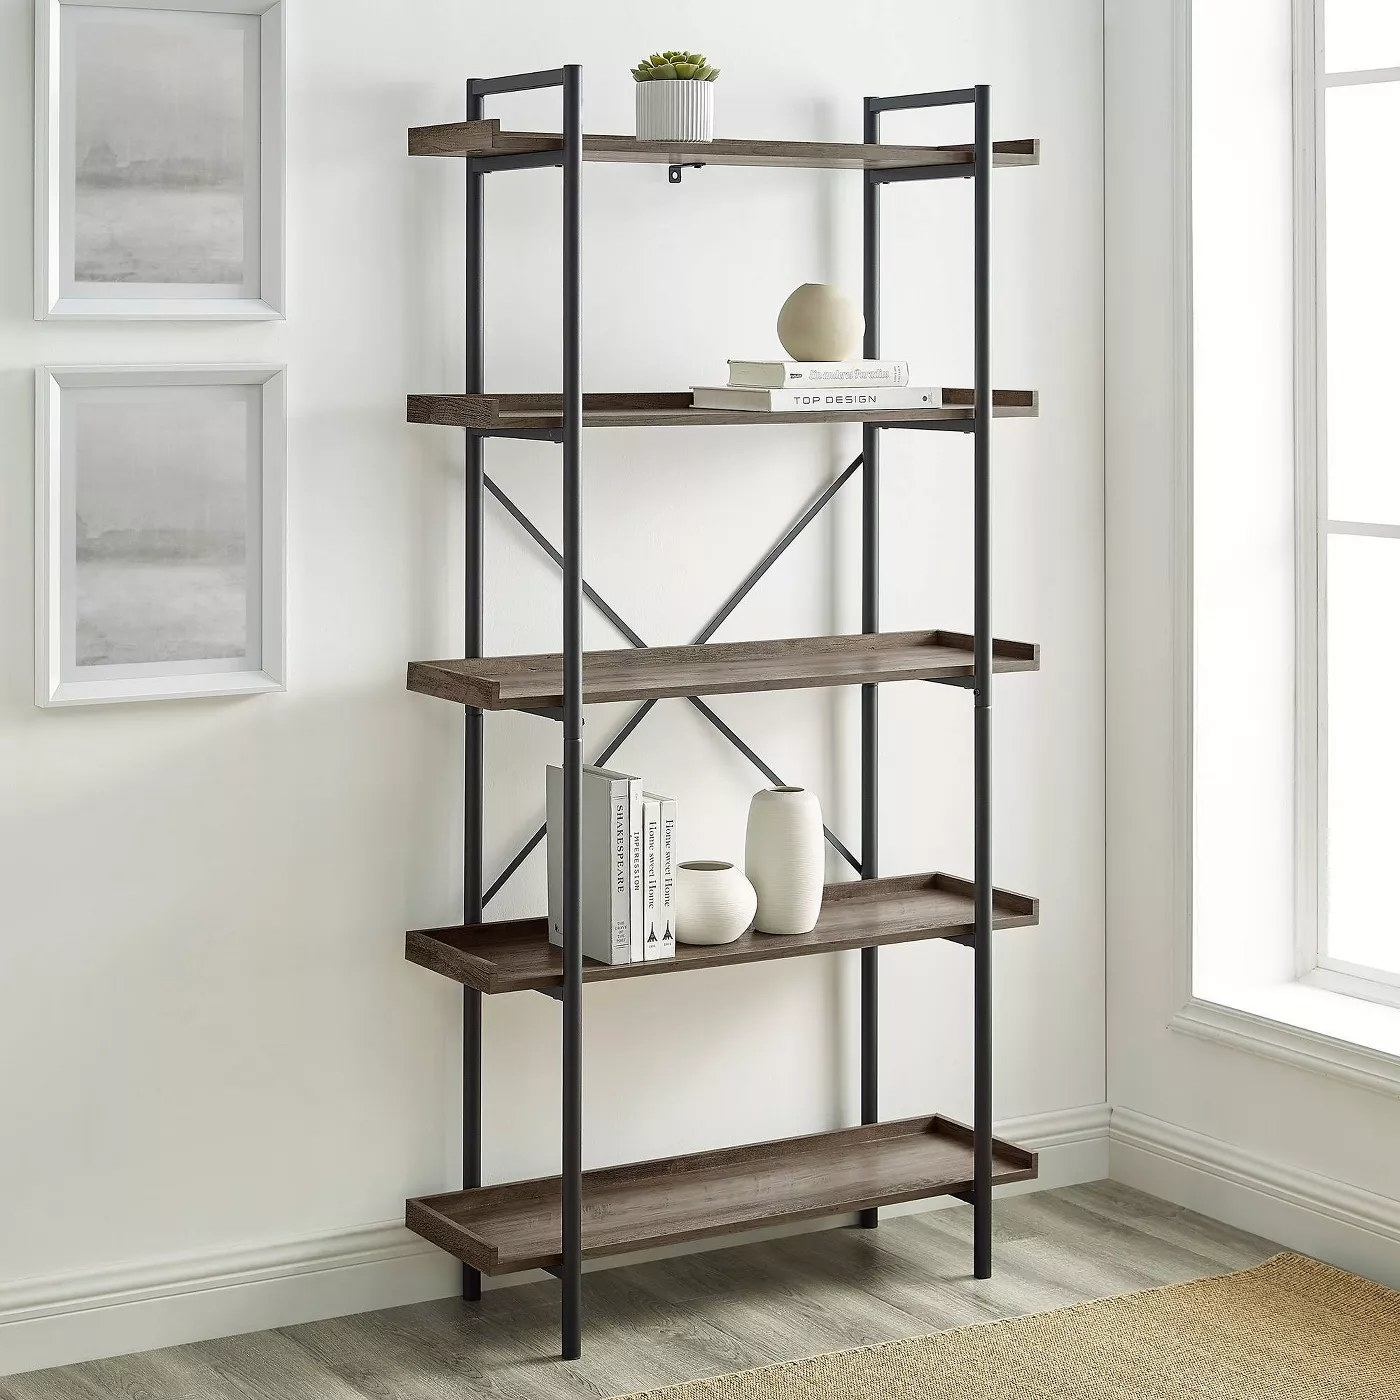 The shelves in gray wash